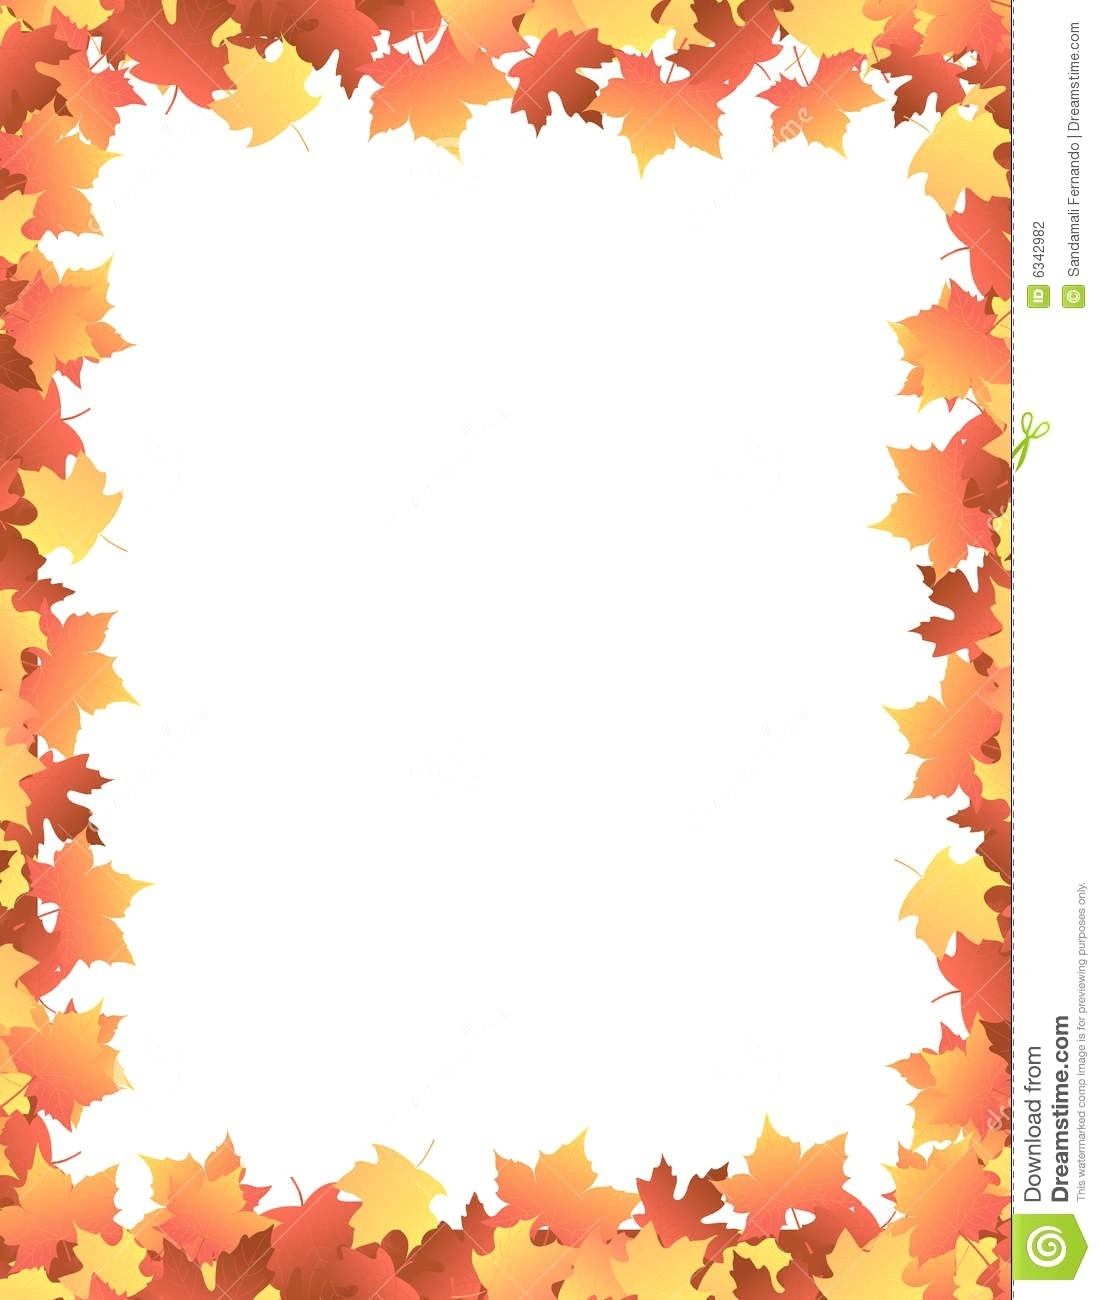 Library of free fall leaves vector black and white border png ...